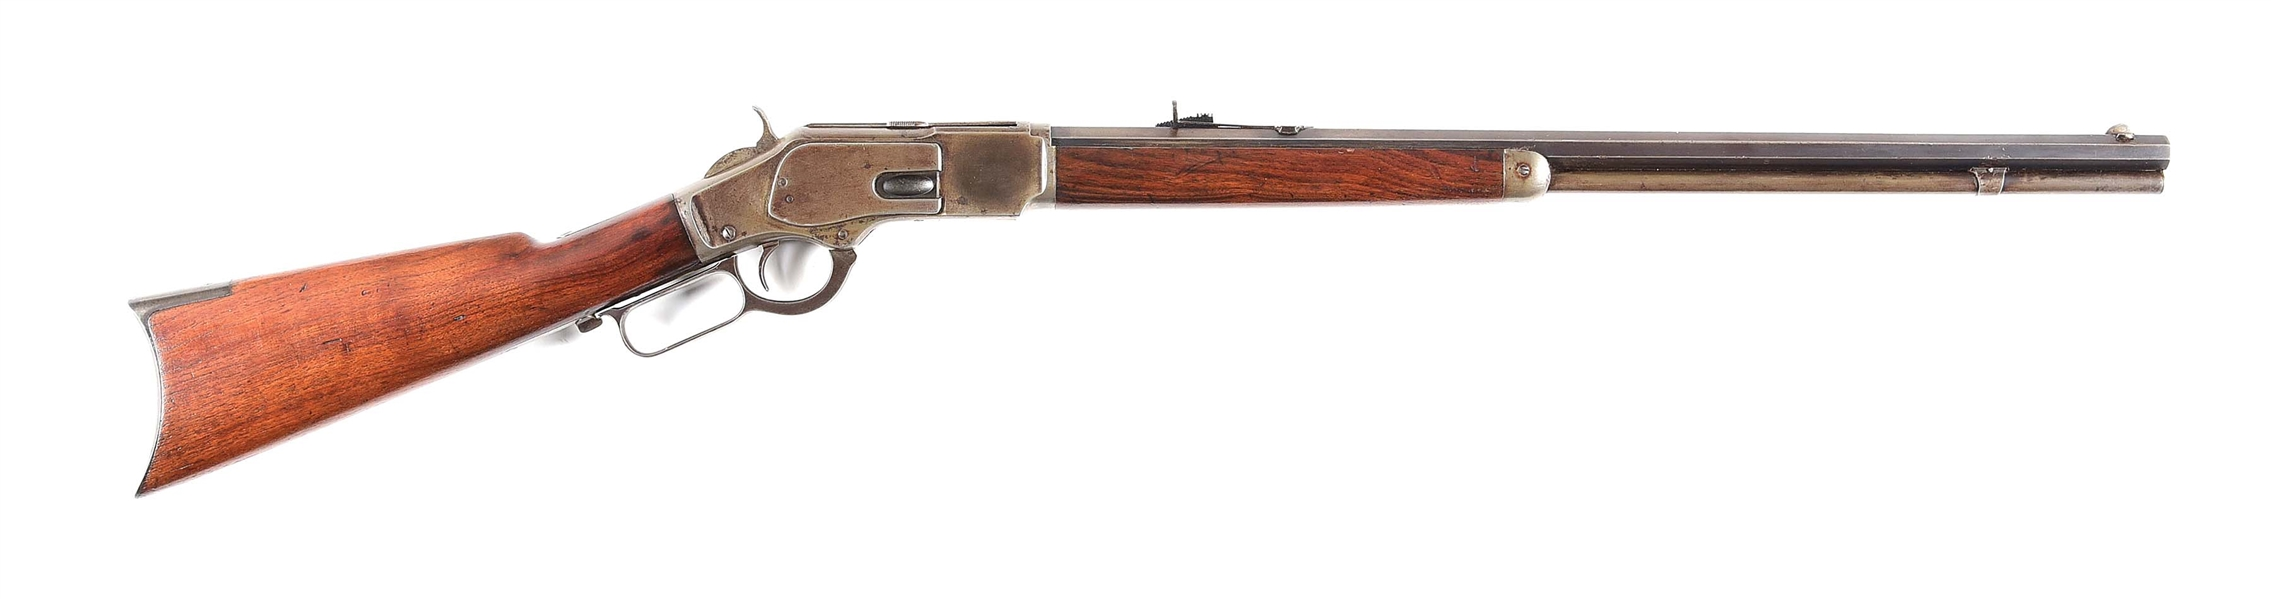 (A) WINCHESTER 1873 .32-20 LEVER ACTION RIFLE.